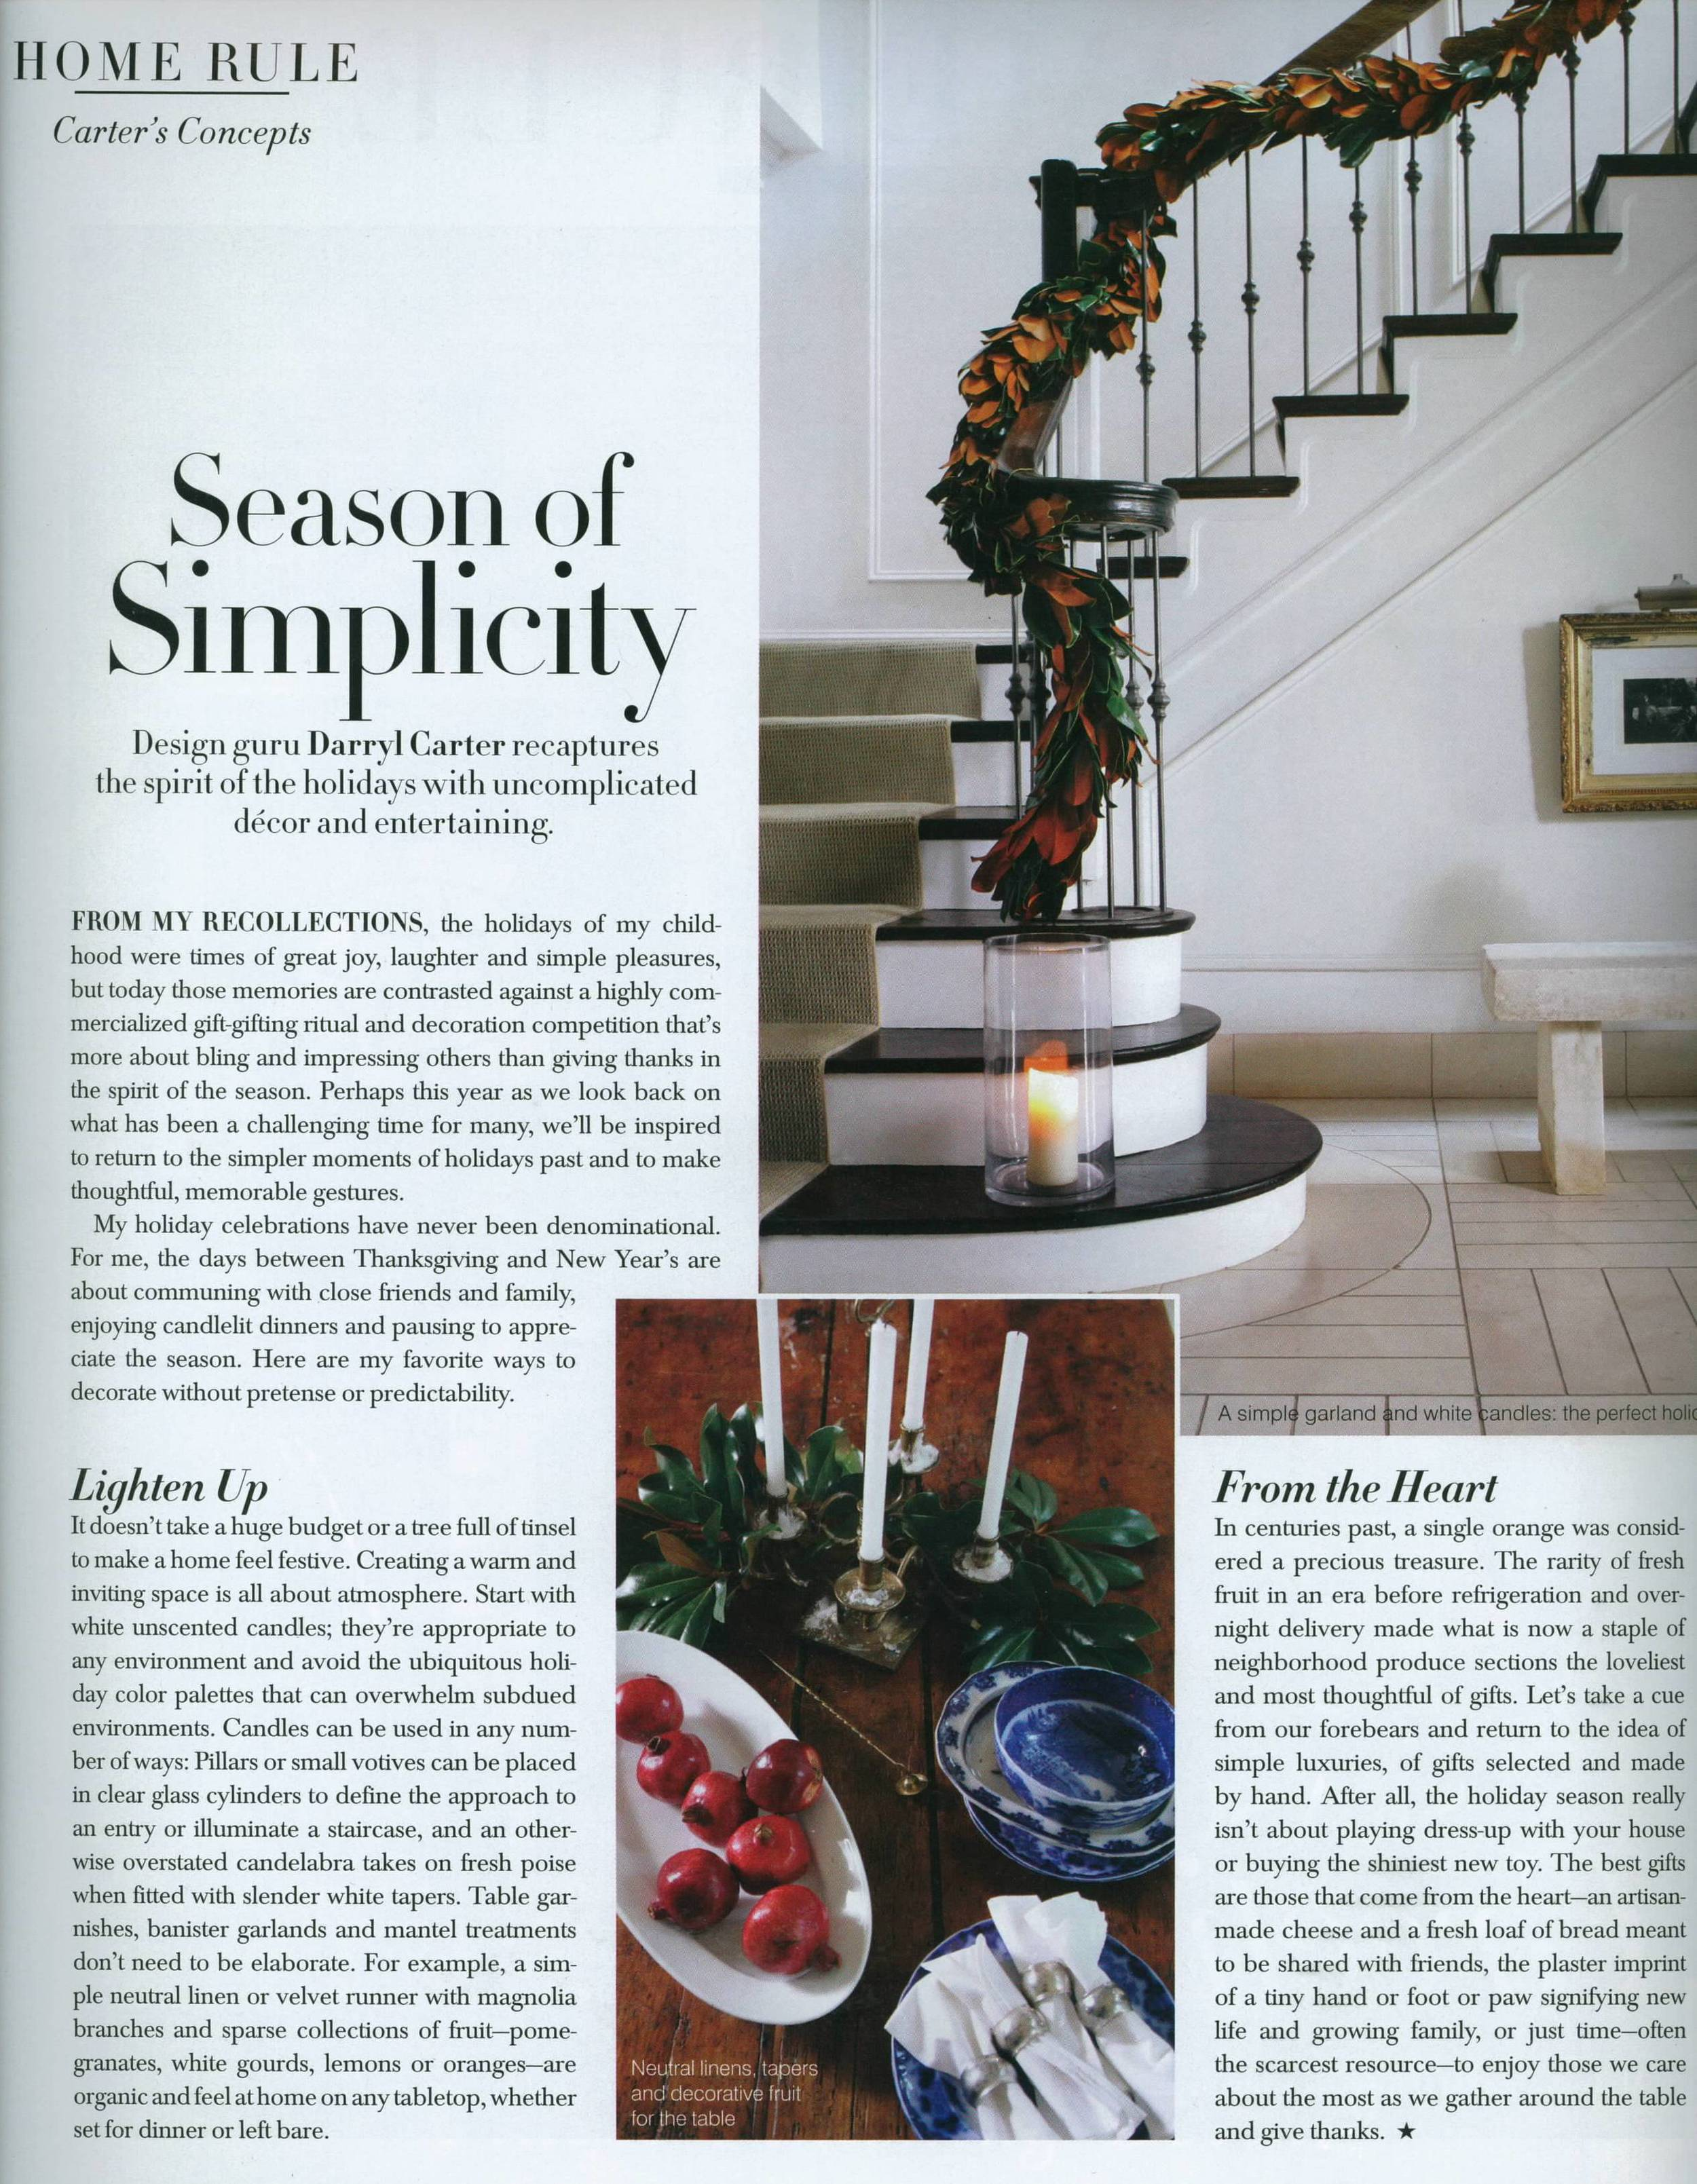 Season of Simplicity (Capitol File holiday 2009).jpg